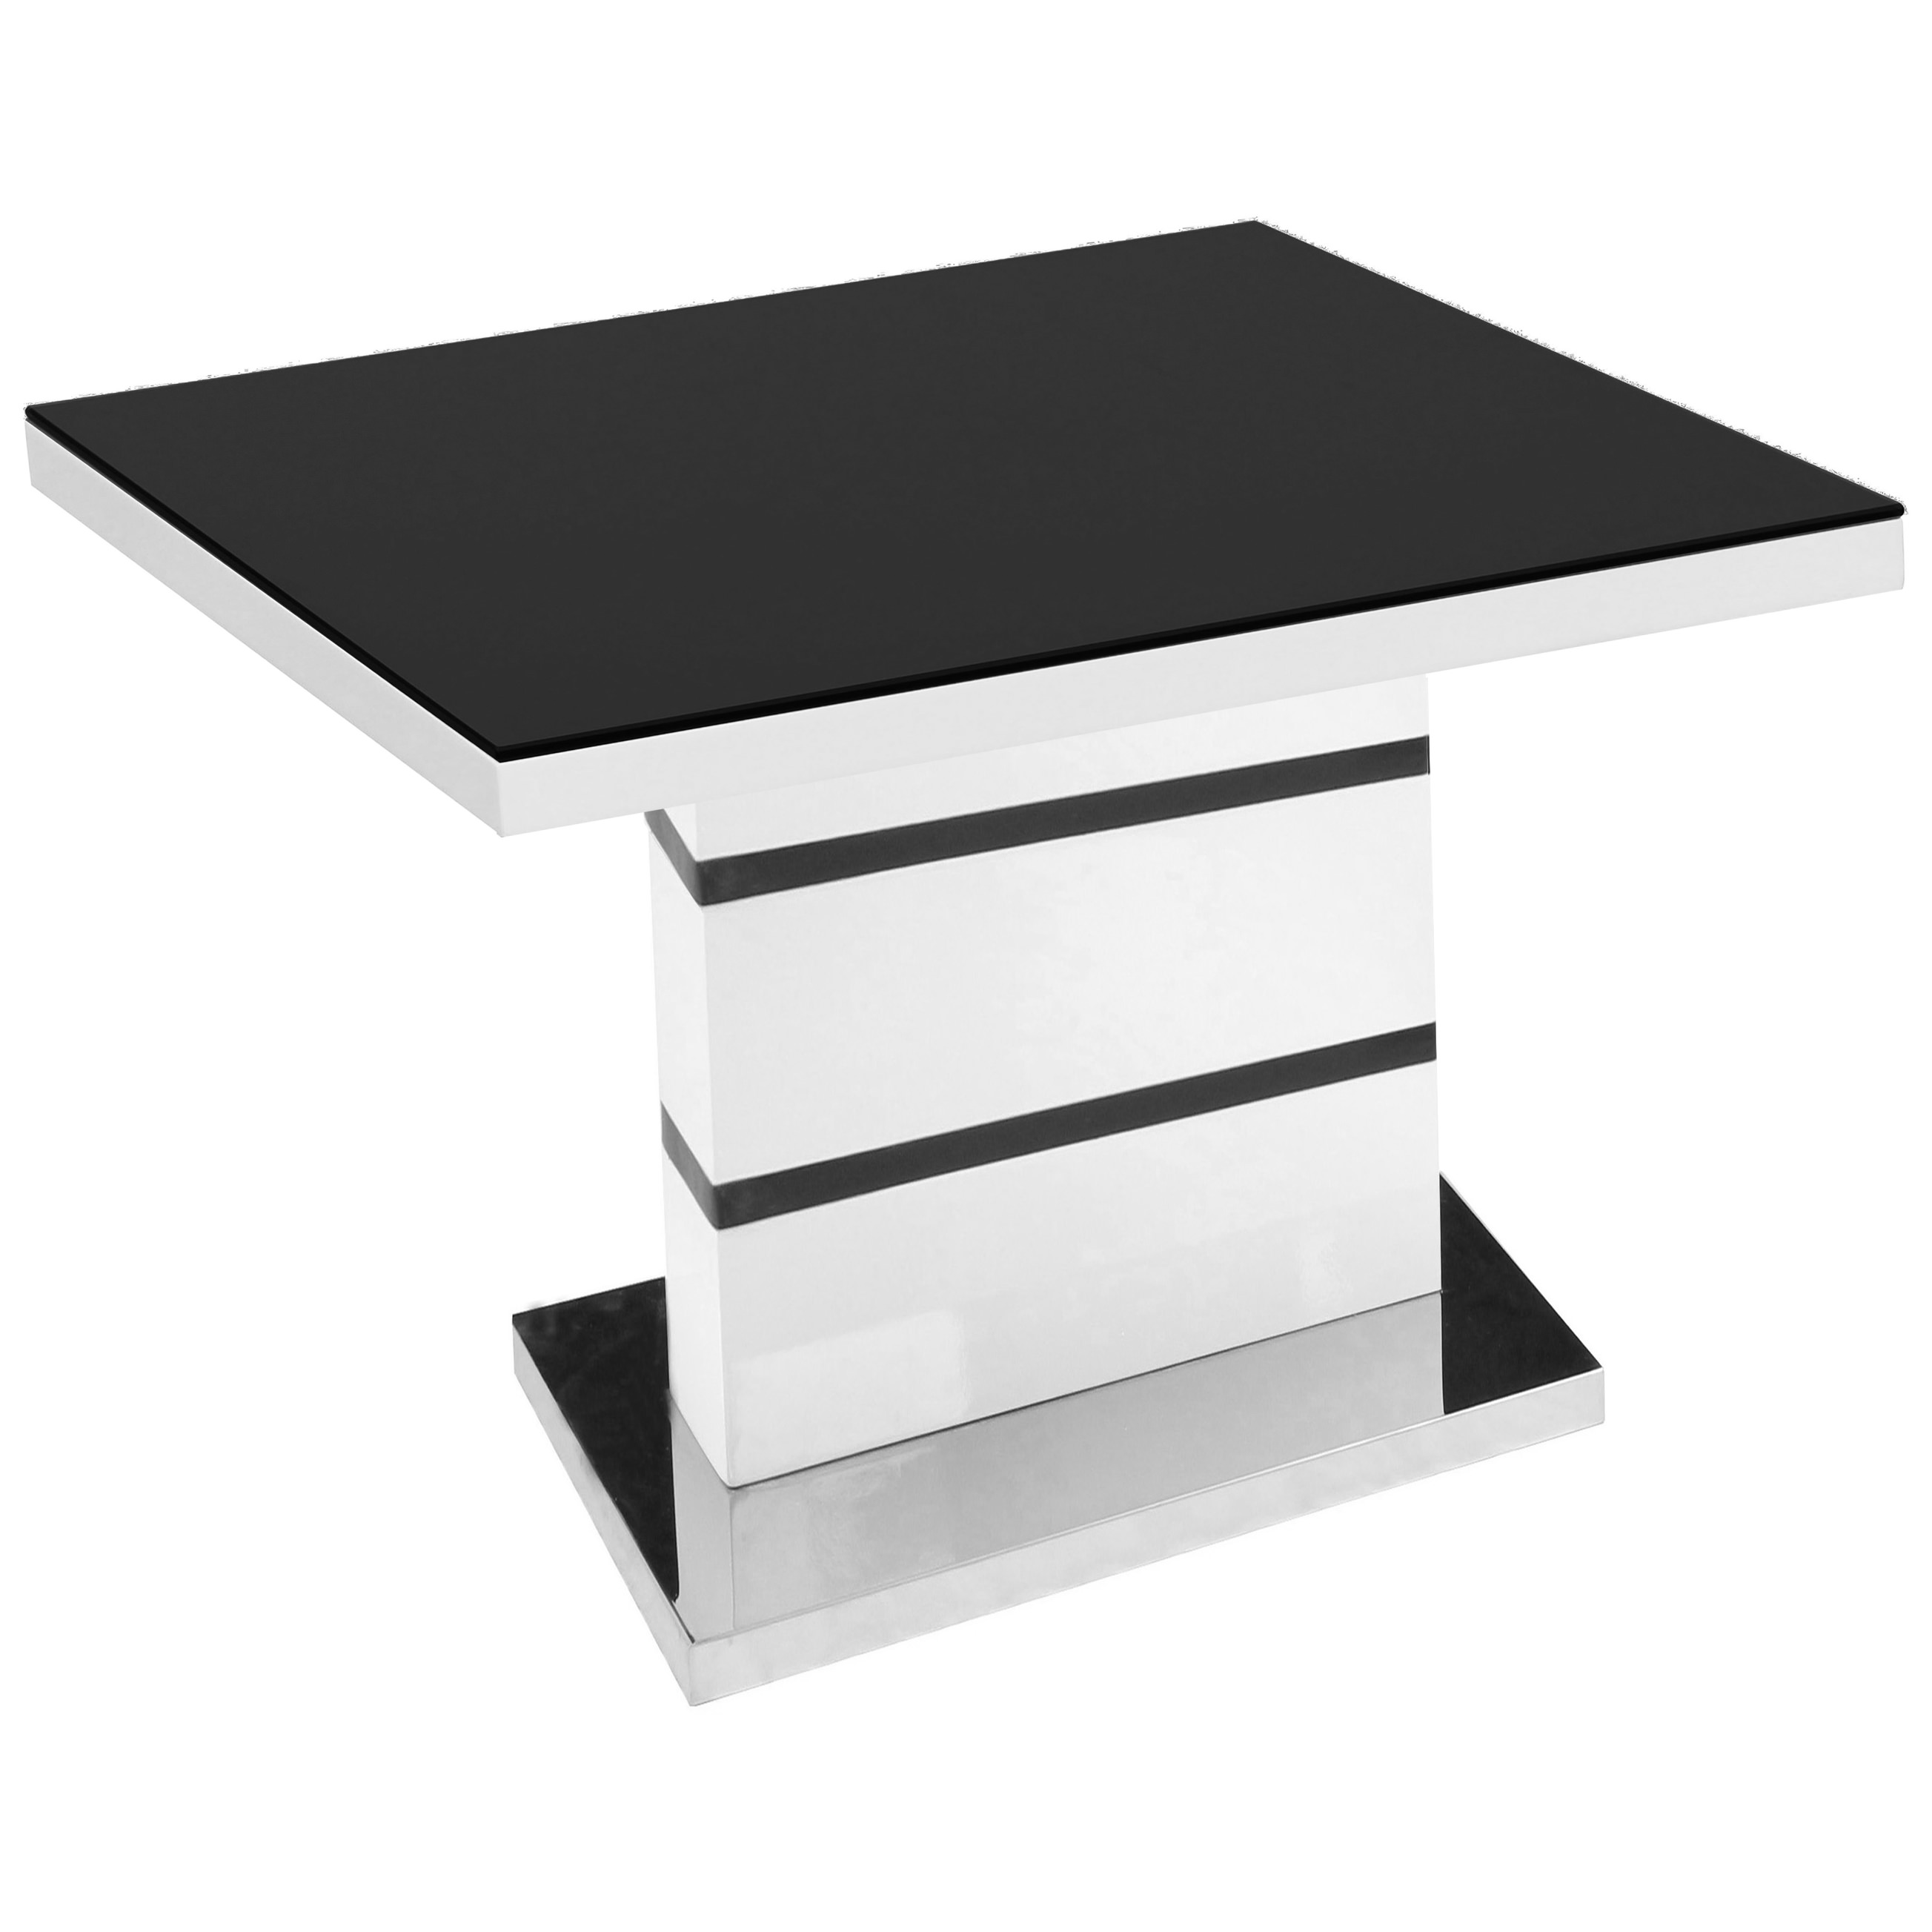 details about black glass high gloss white end lamp small side coffee table